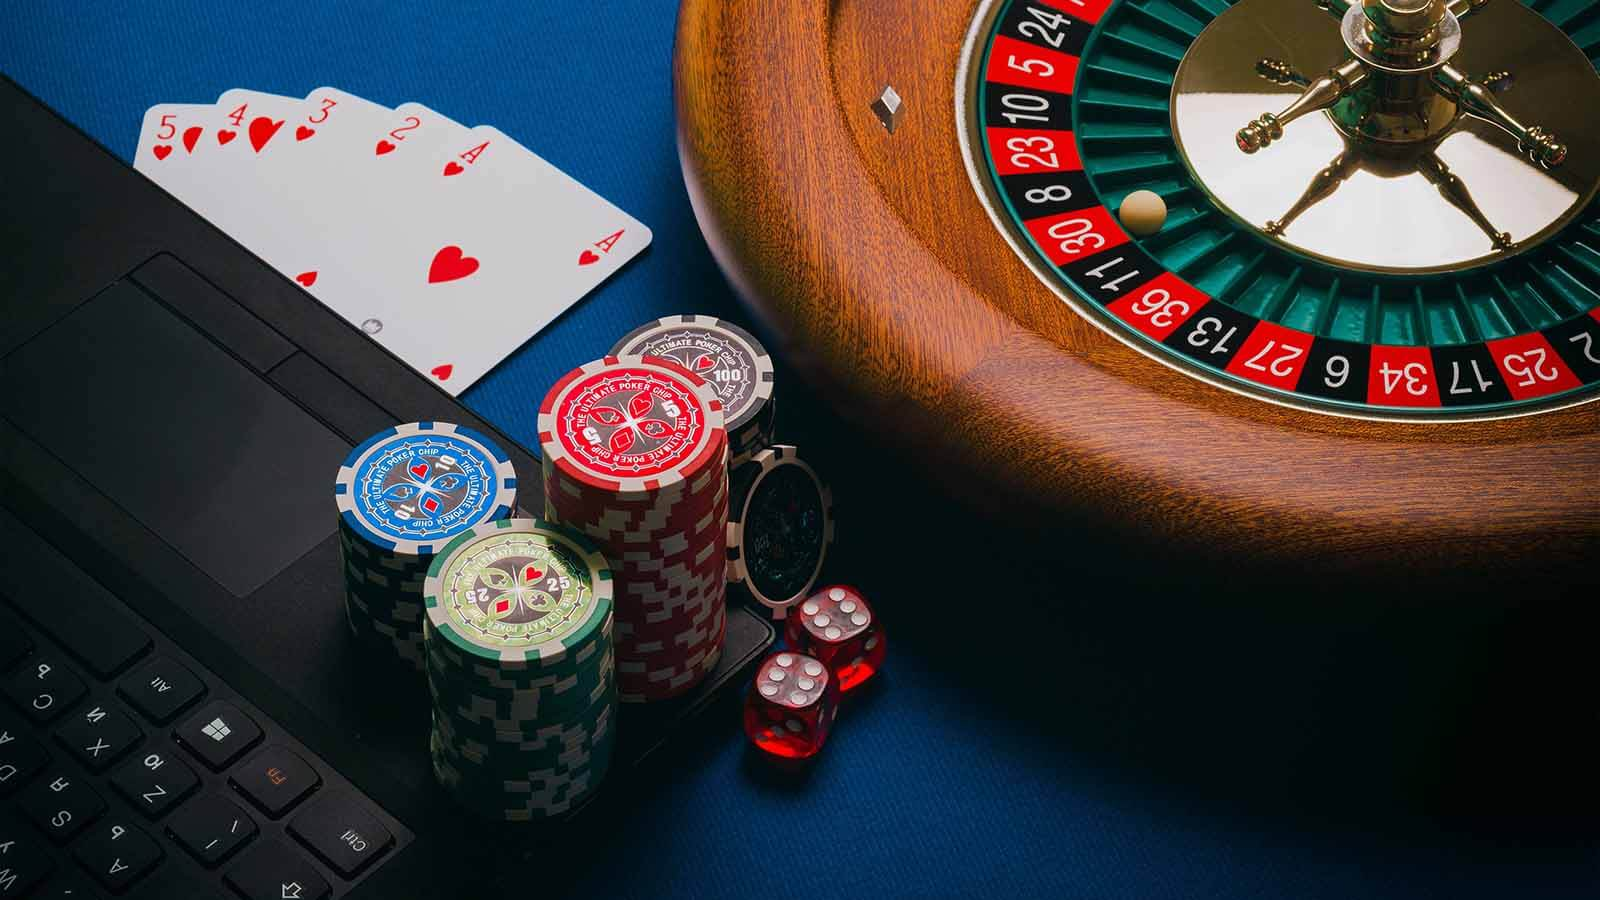 Download Evo888 Hack APK For Android, IOS | Online Casino Malaysia